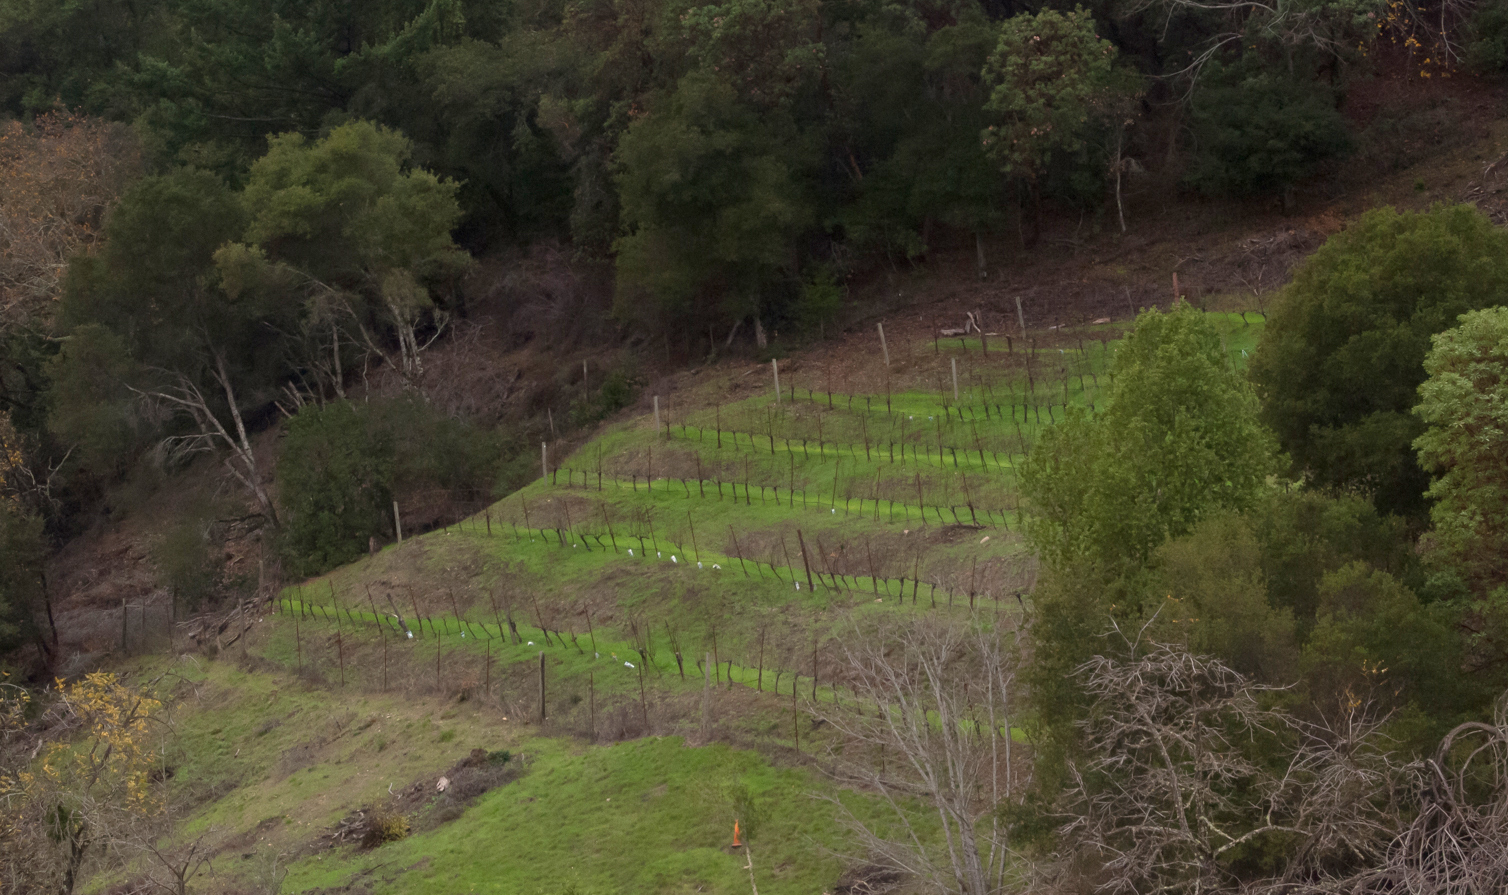 Newer vines up on the hill